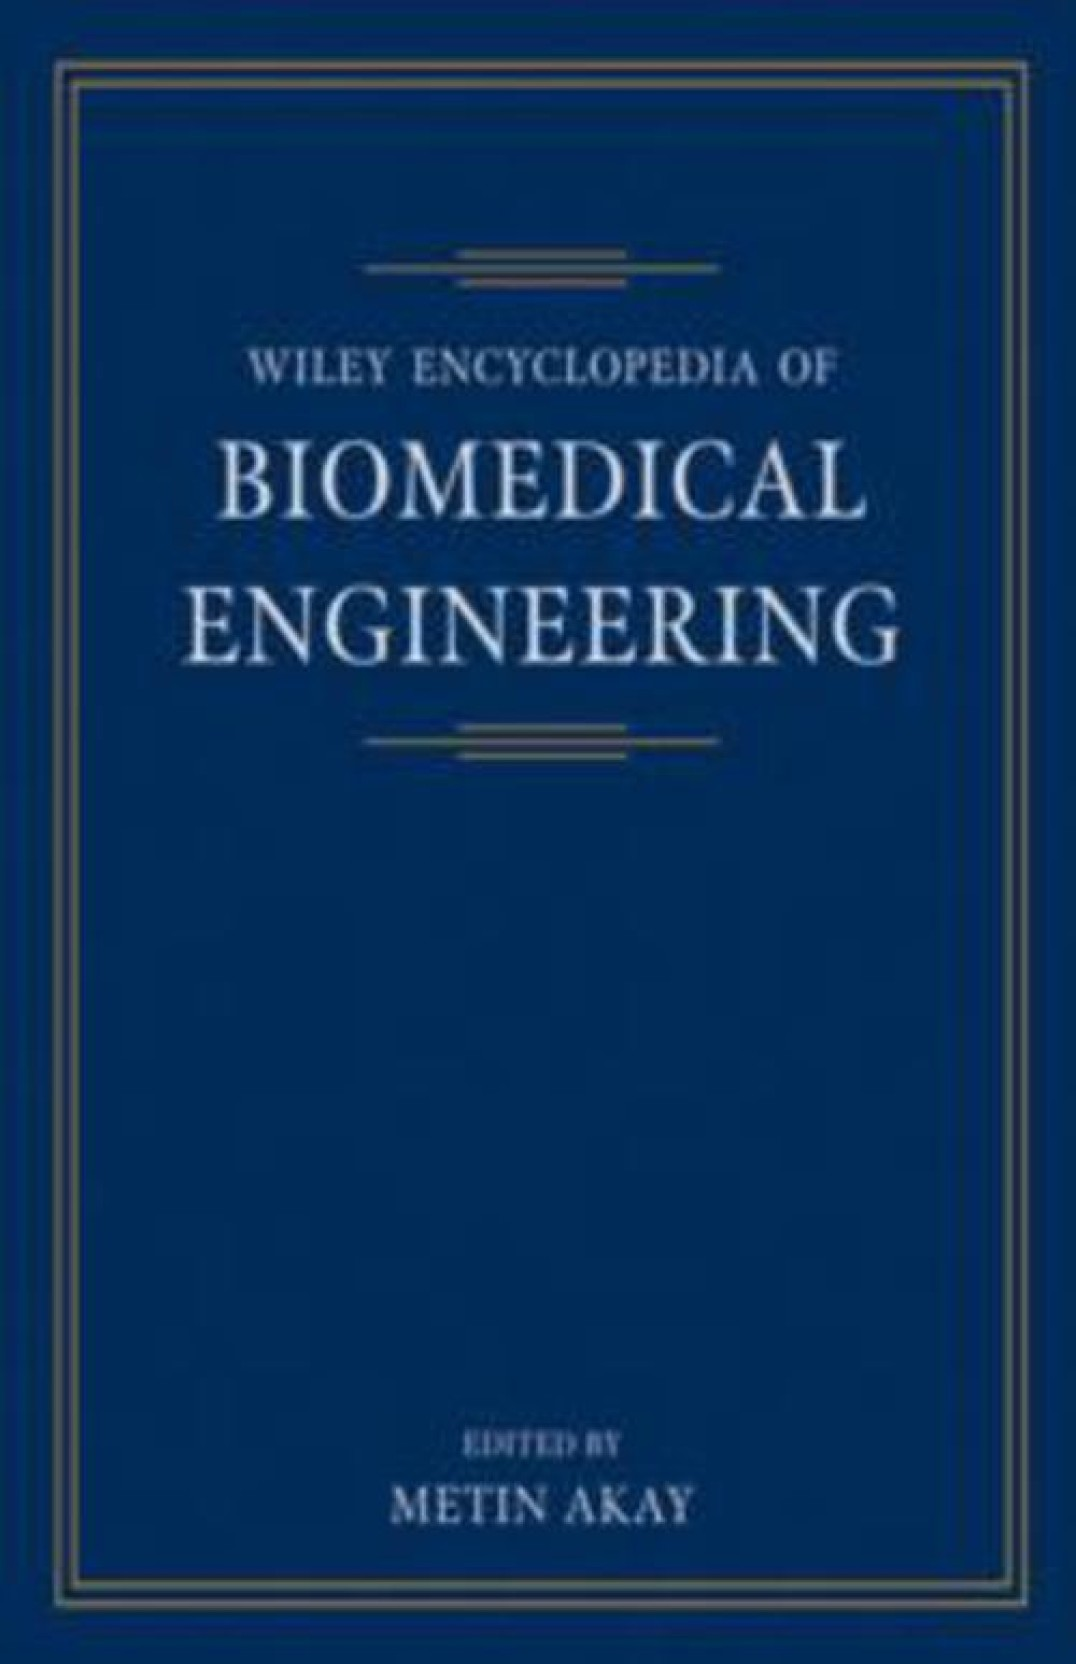 Wiley Encyclopedia of Biomedical Engineering, 6-Volume Set HRD Edition. ADD  TO CART